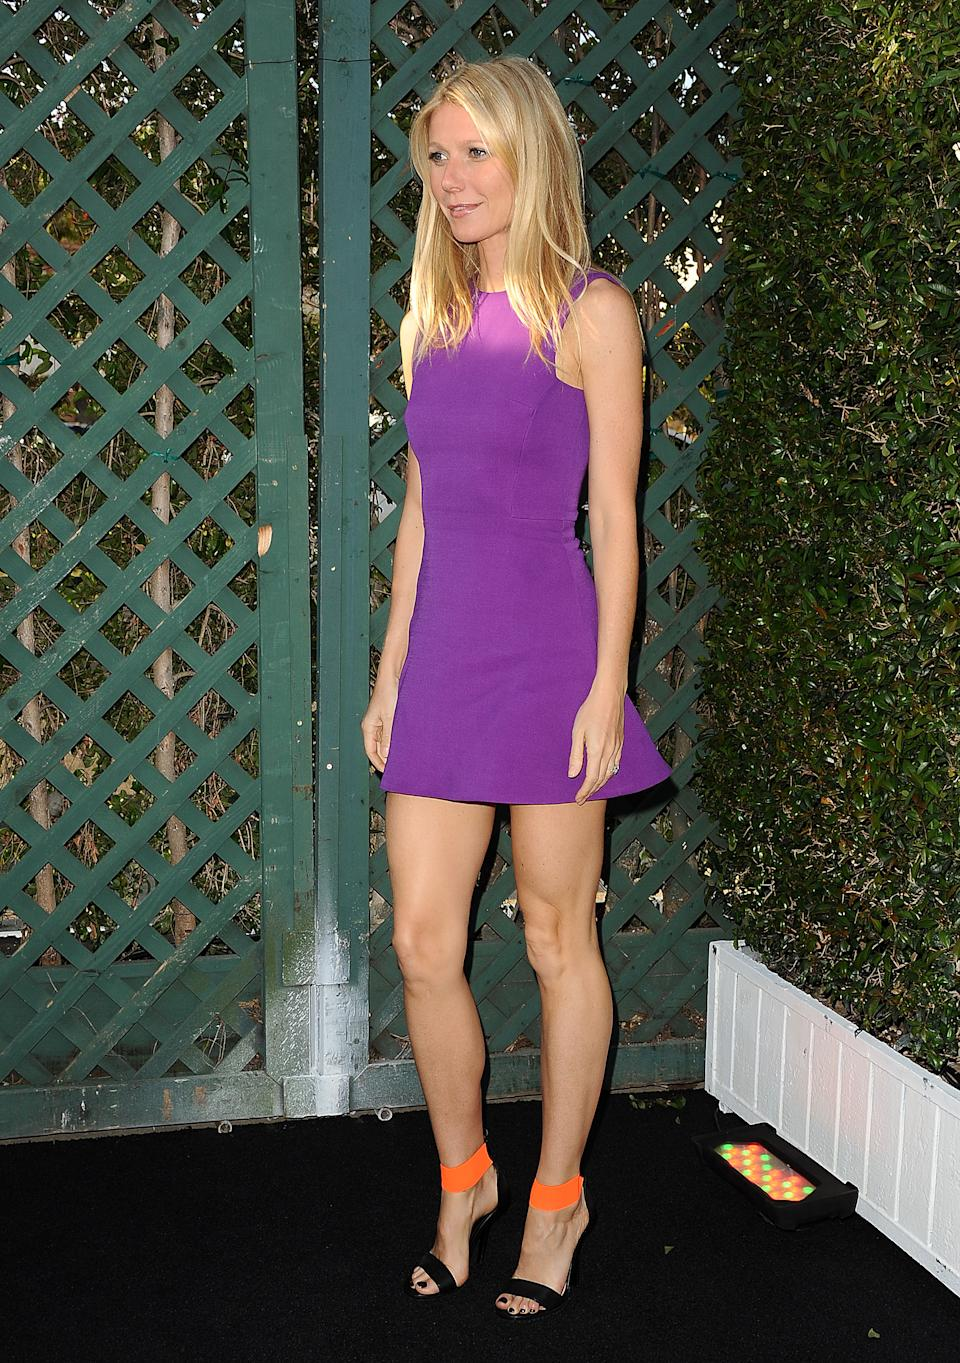 BRENTWOOD, CA - APRIL 04: Actress Gwyneth Paltrow attends the opening of Tracy Anderson Flagship Studio on April 4, 2013 in Brentwood, California. (Photo by Jason LaVeris/FilmMagic)